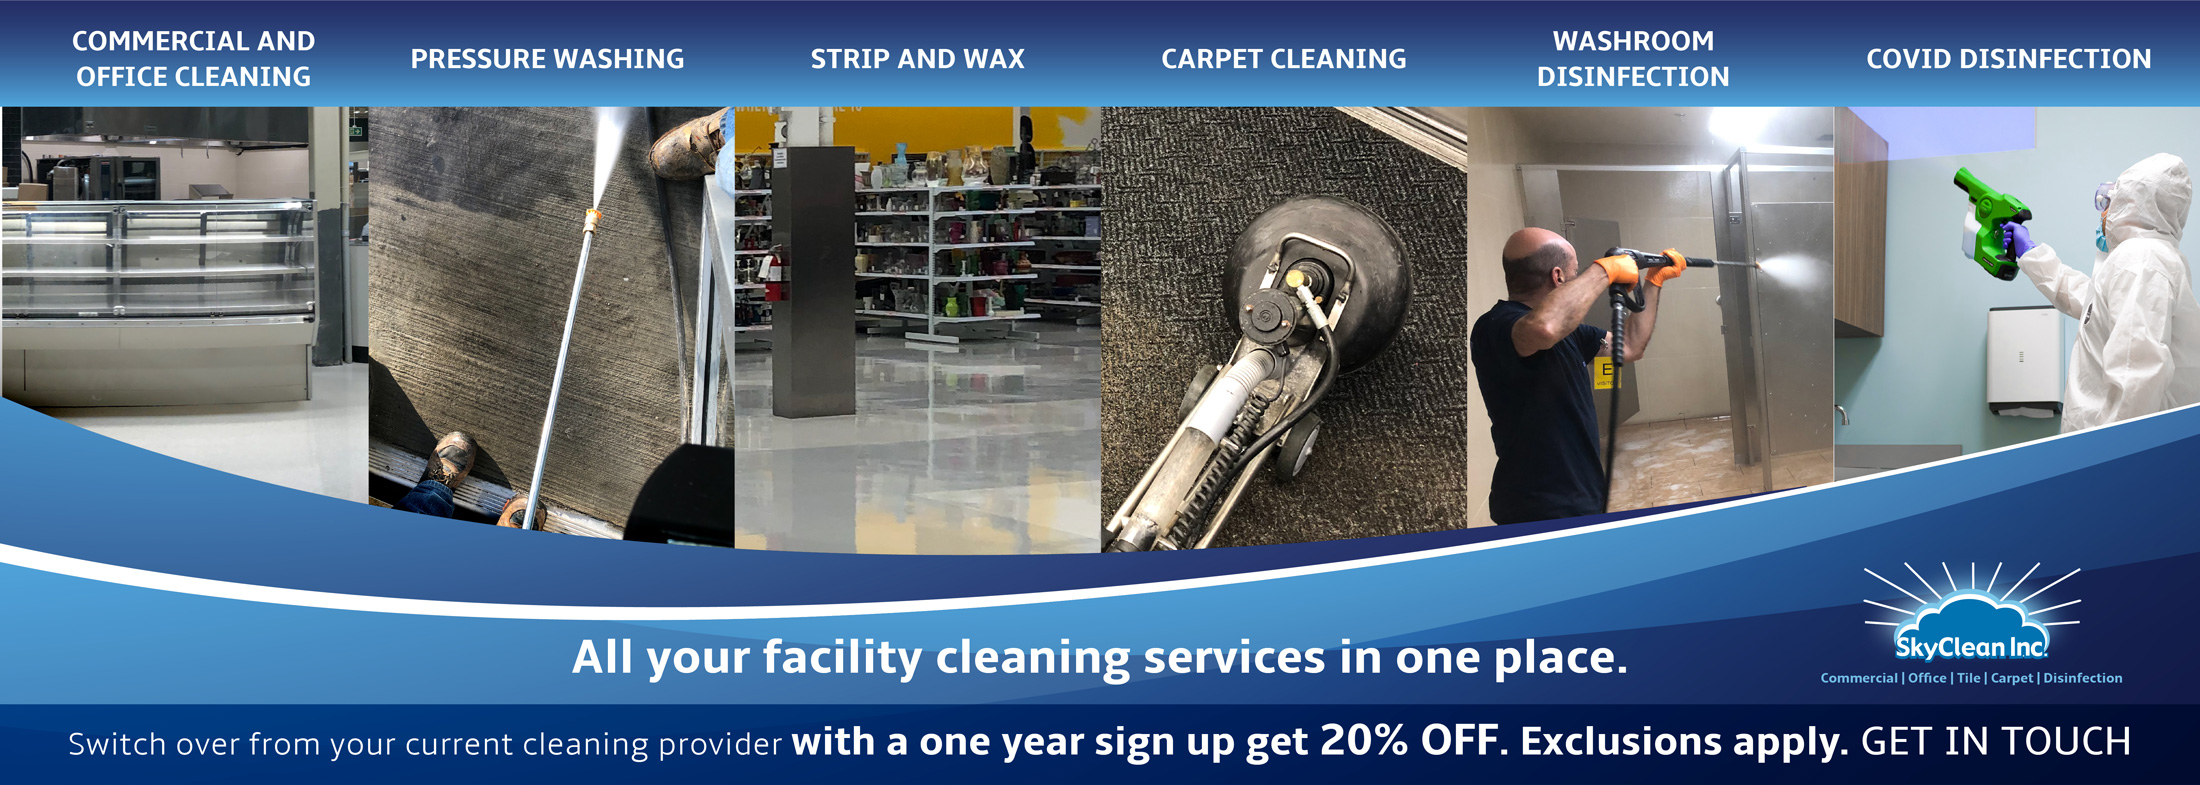 Janitorial Services by SkyClean Inc. - Cleaning Company Stratford ON